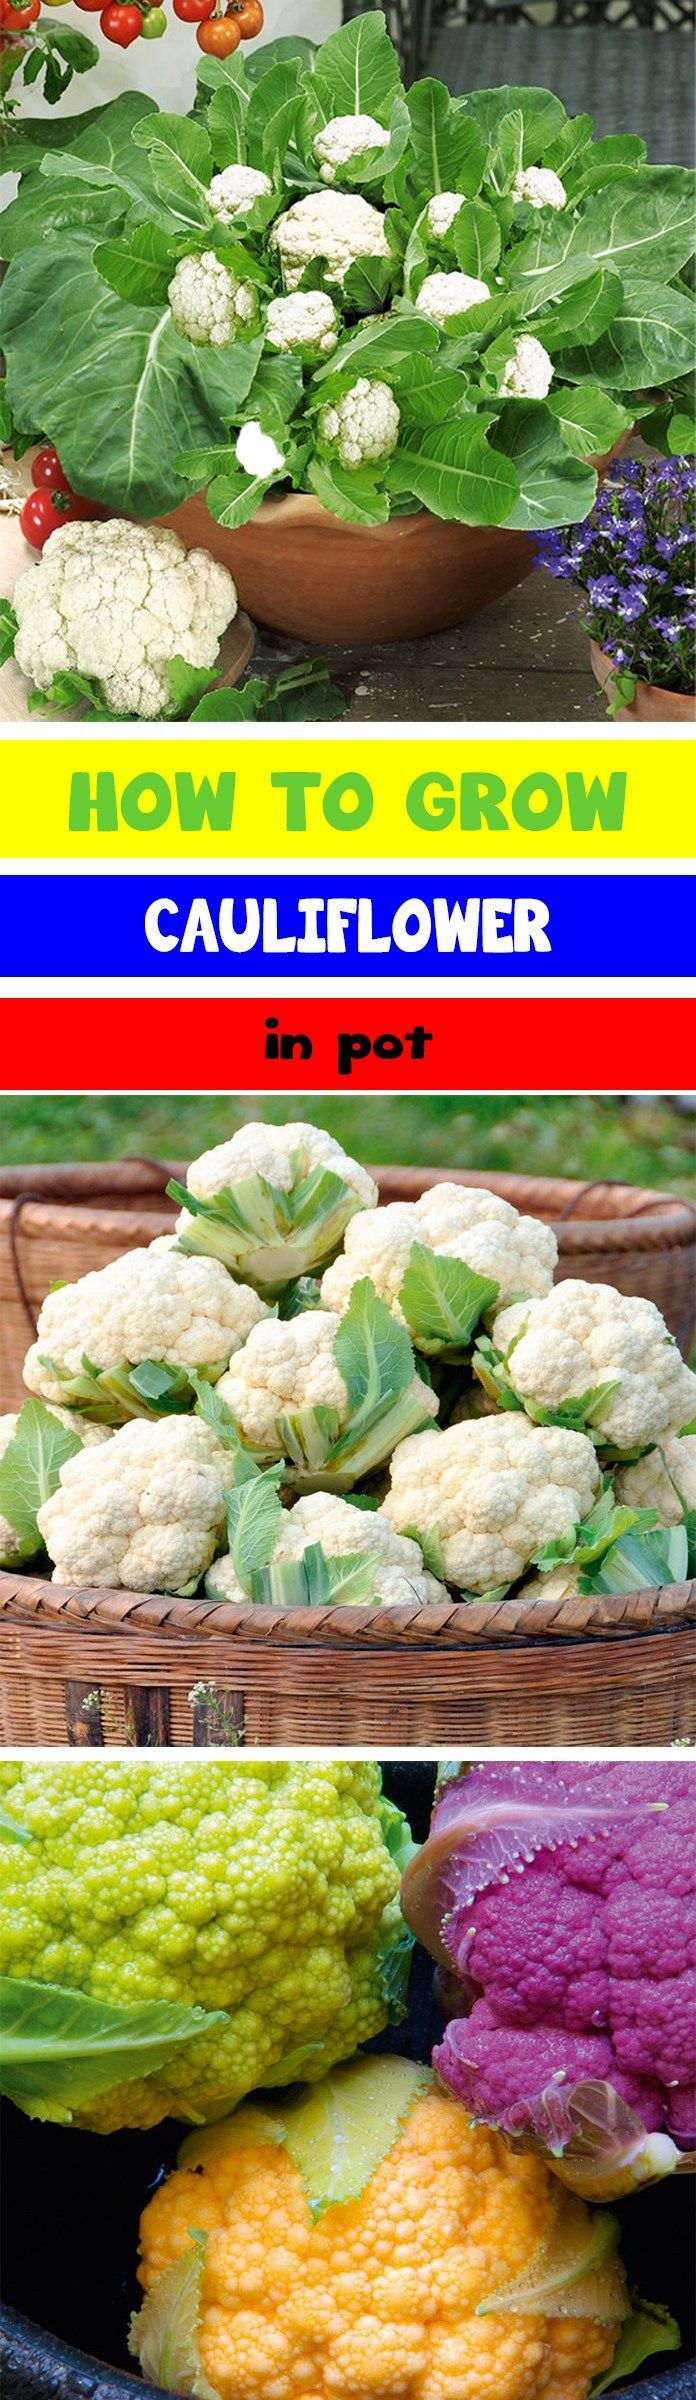 How to Grow Cauliflower in Pot, Growing Cauliflower in a Container, How to Grow Cauliflower, Vegetable Cauliflower, Cauliflower, Vegetables, Vegetable Garden, Spring Garden, Gardening, Tips, Homesteading, Gardening, Cool Season Crops, Container Gardening